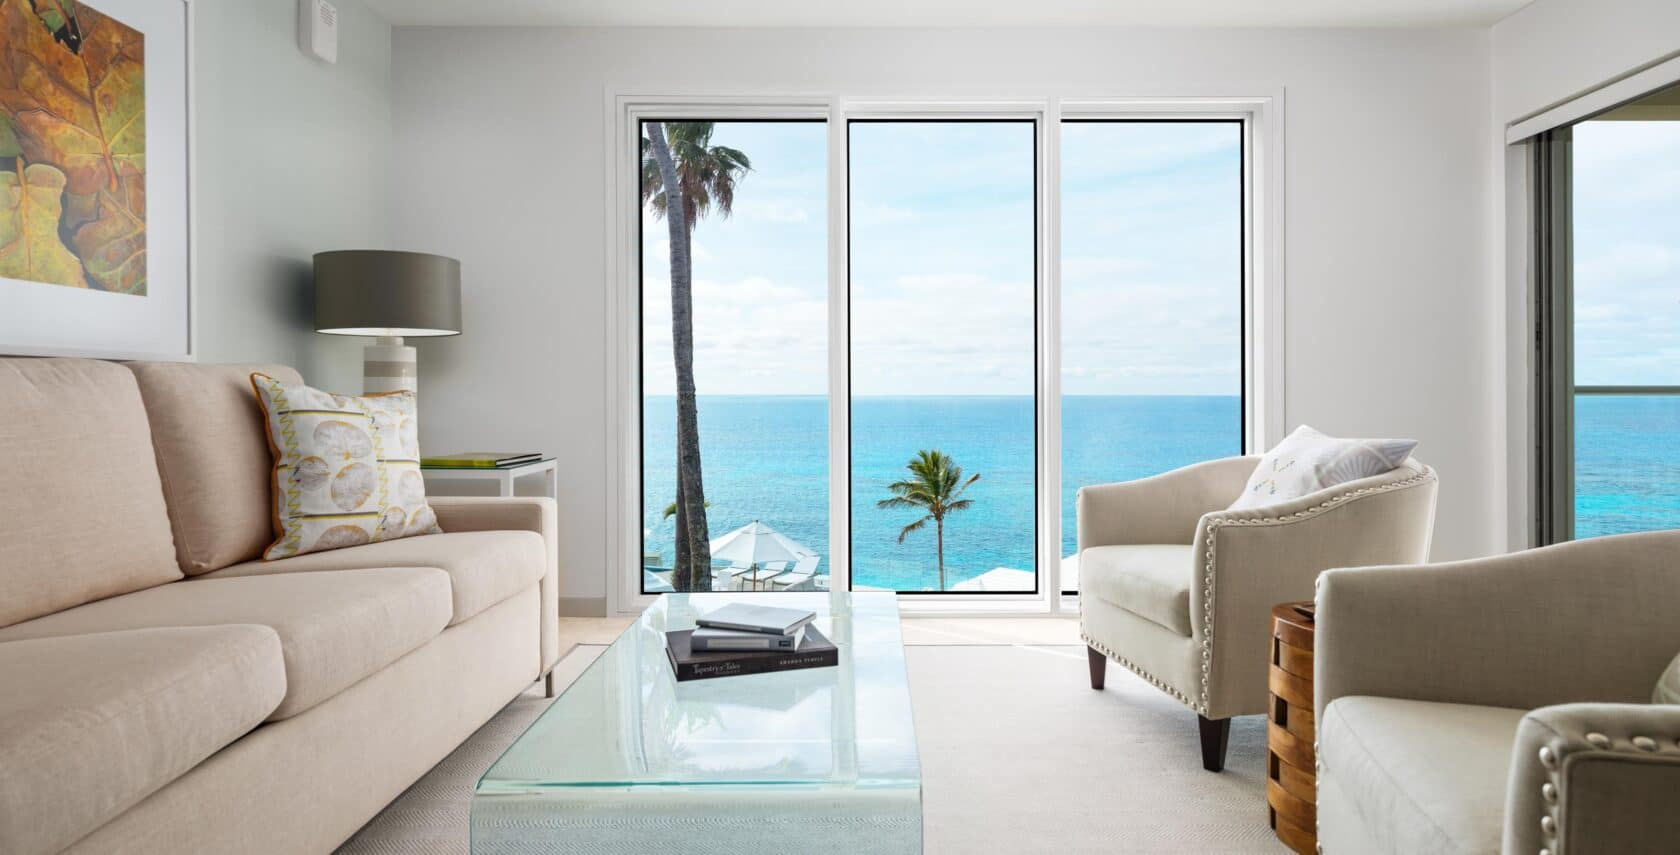 A living area with couches, a glass coffee table, and glass doors with an ocean view.